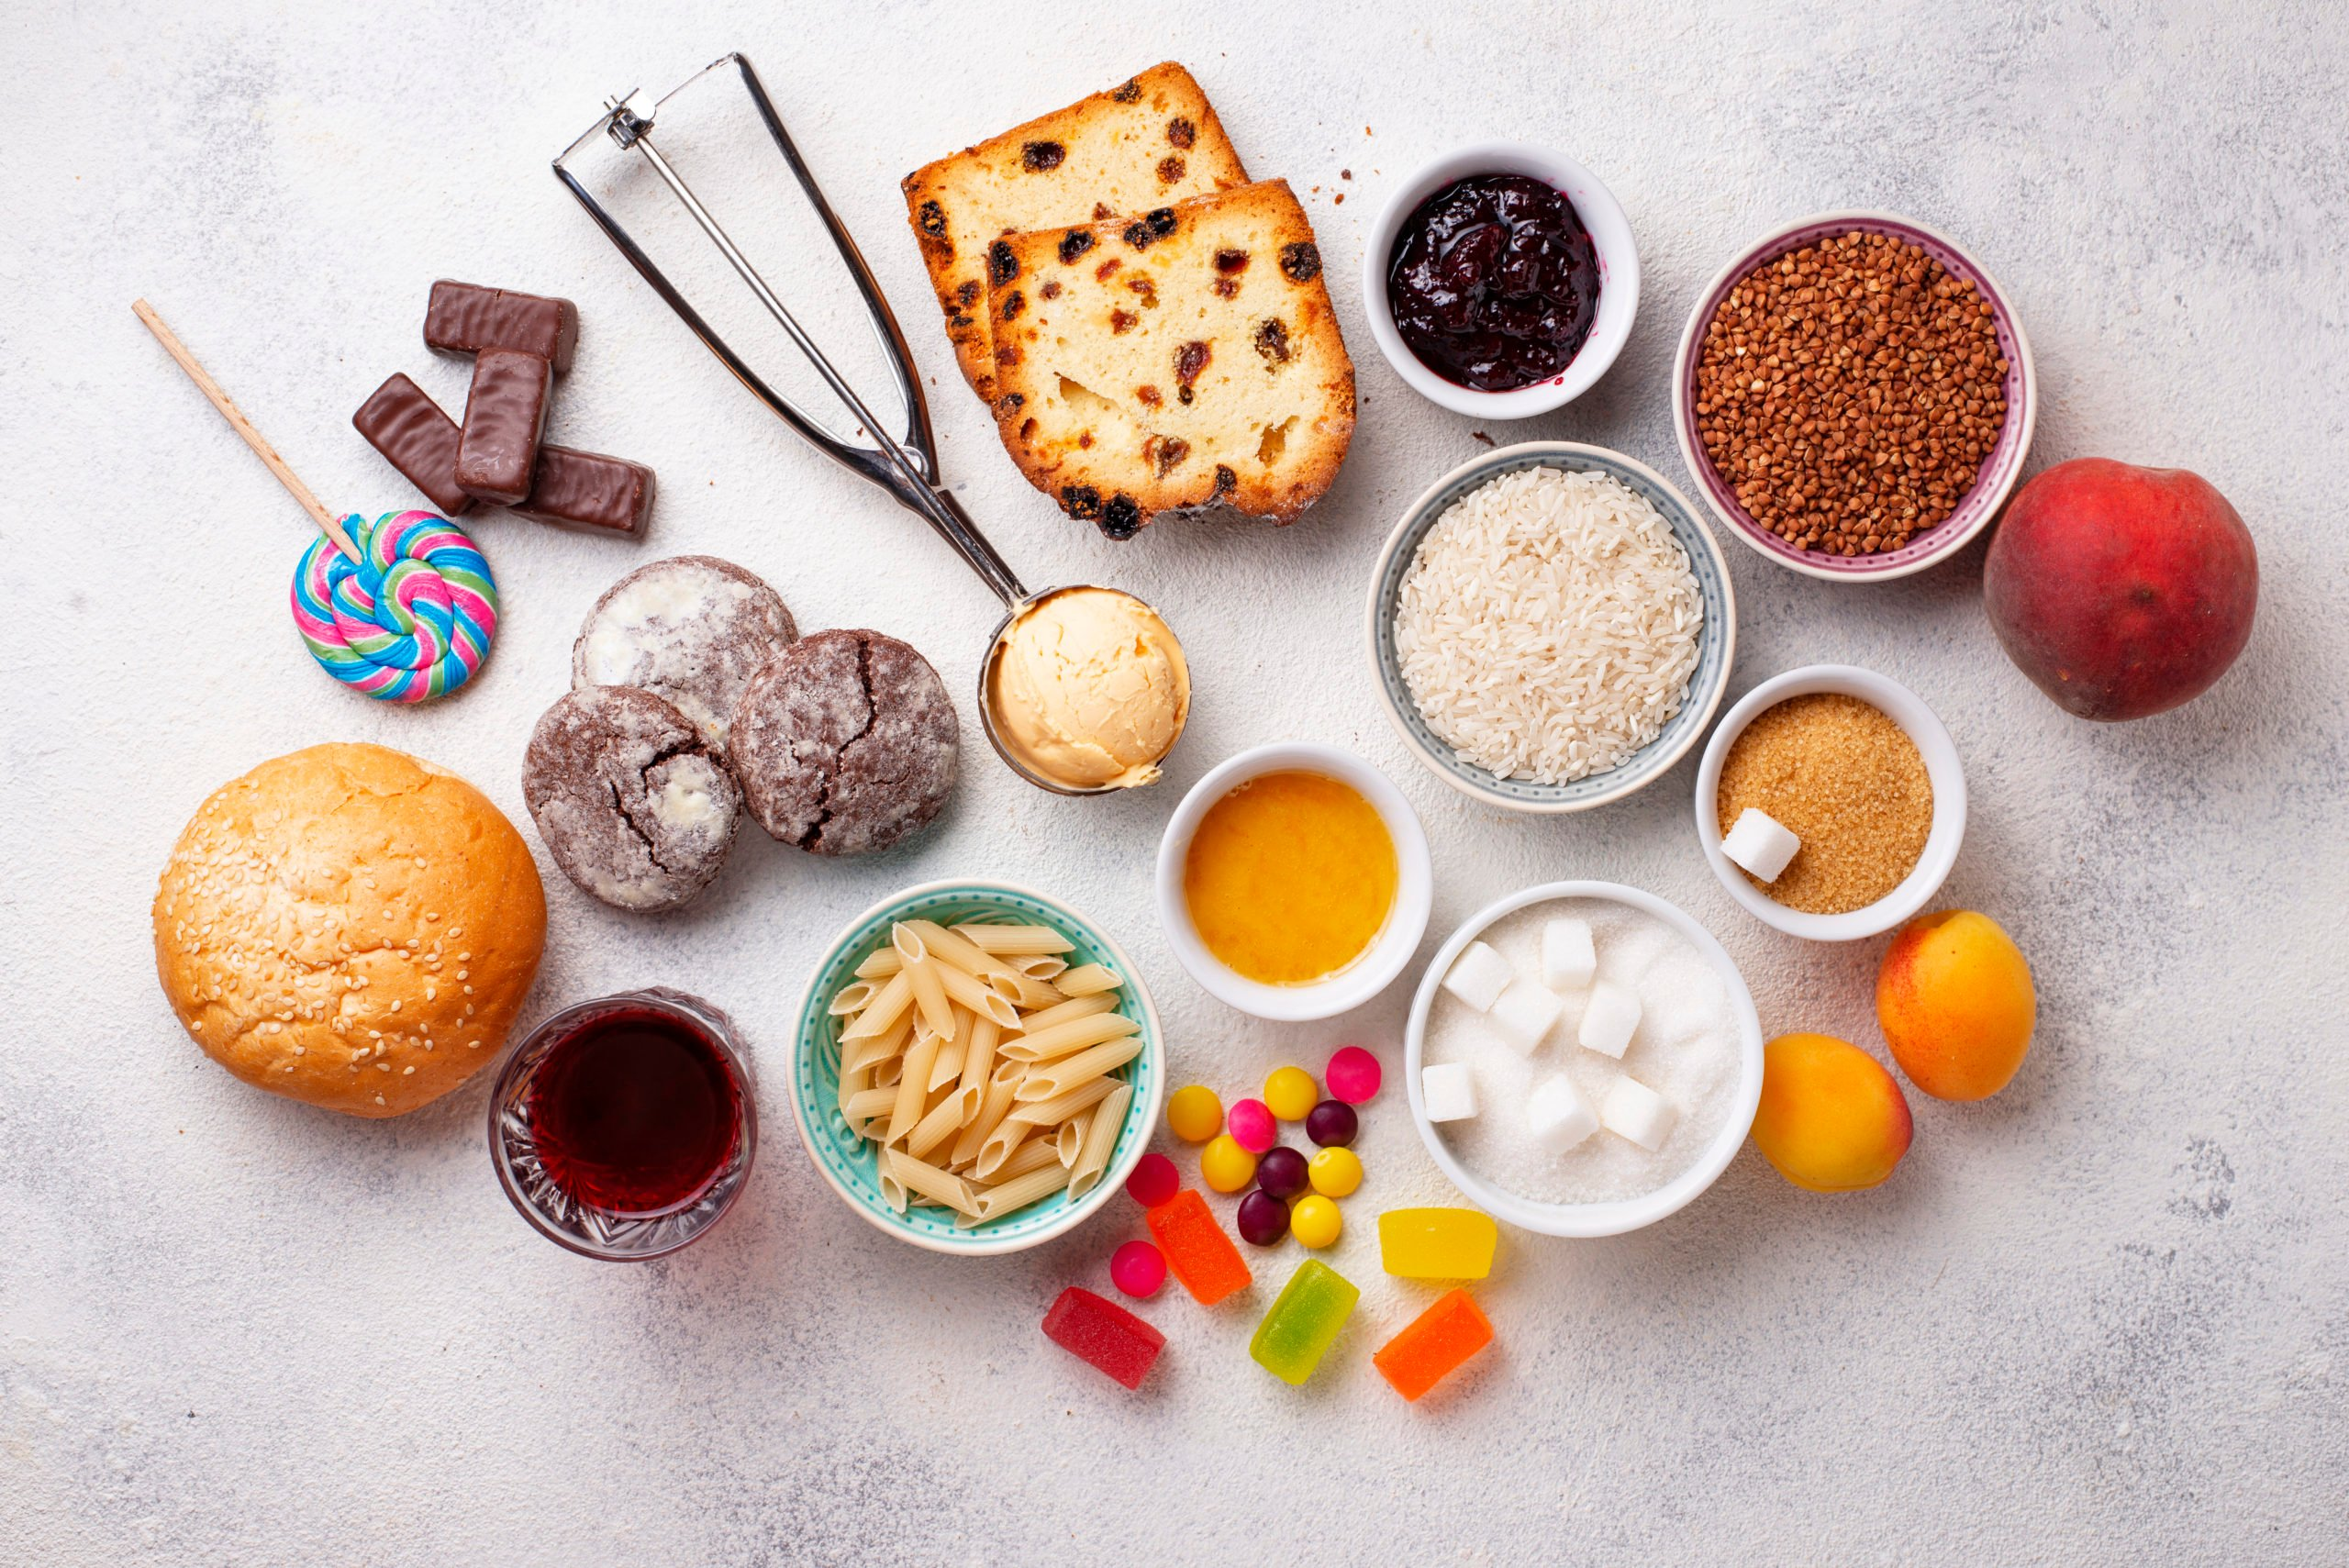 foods that cause inflammation shown on a table with breadsand candy